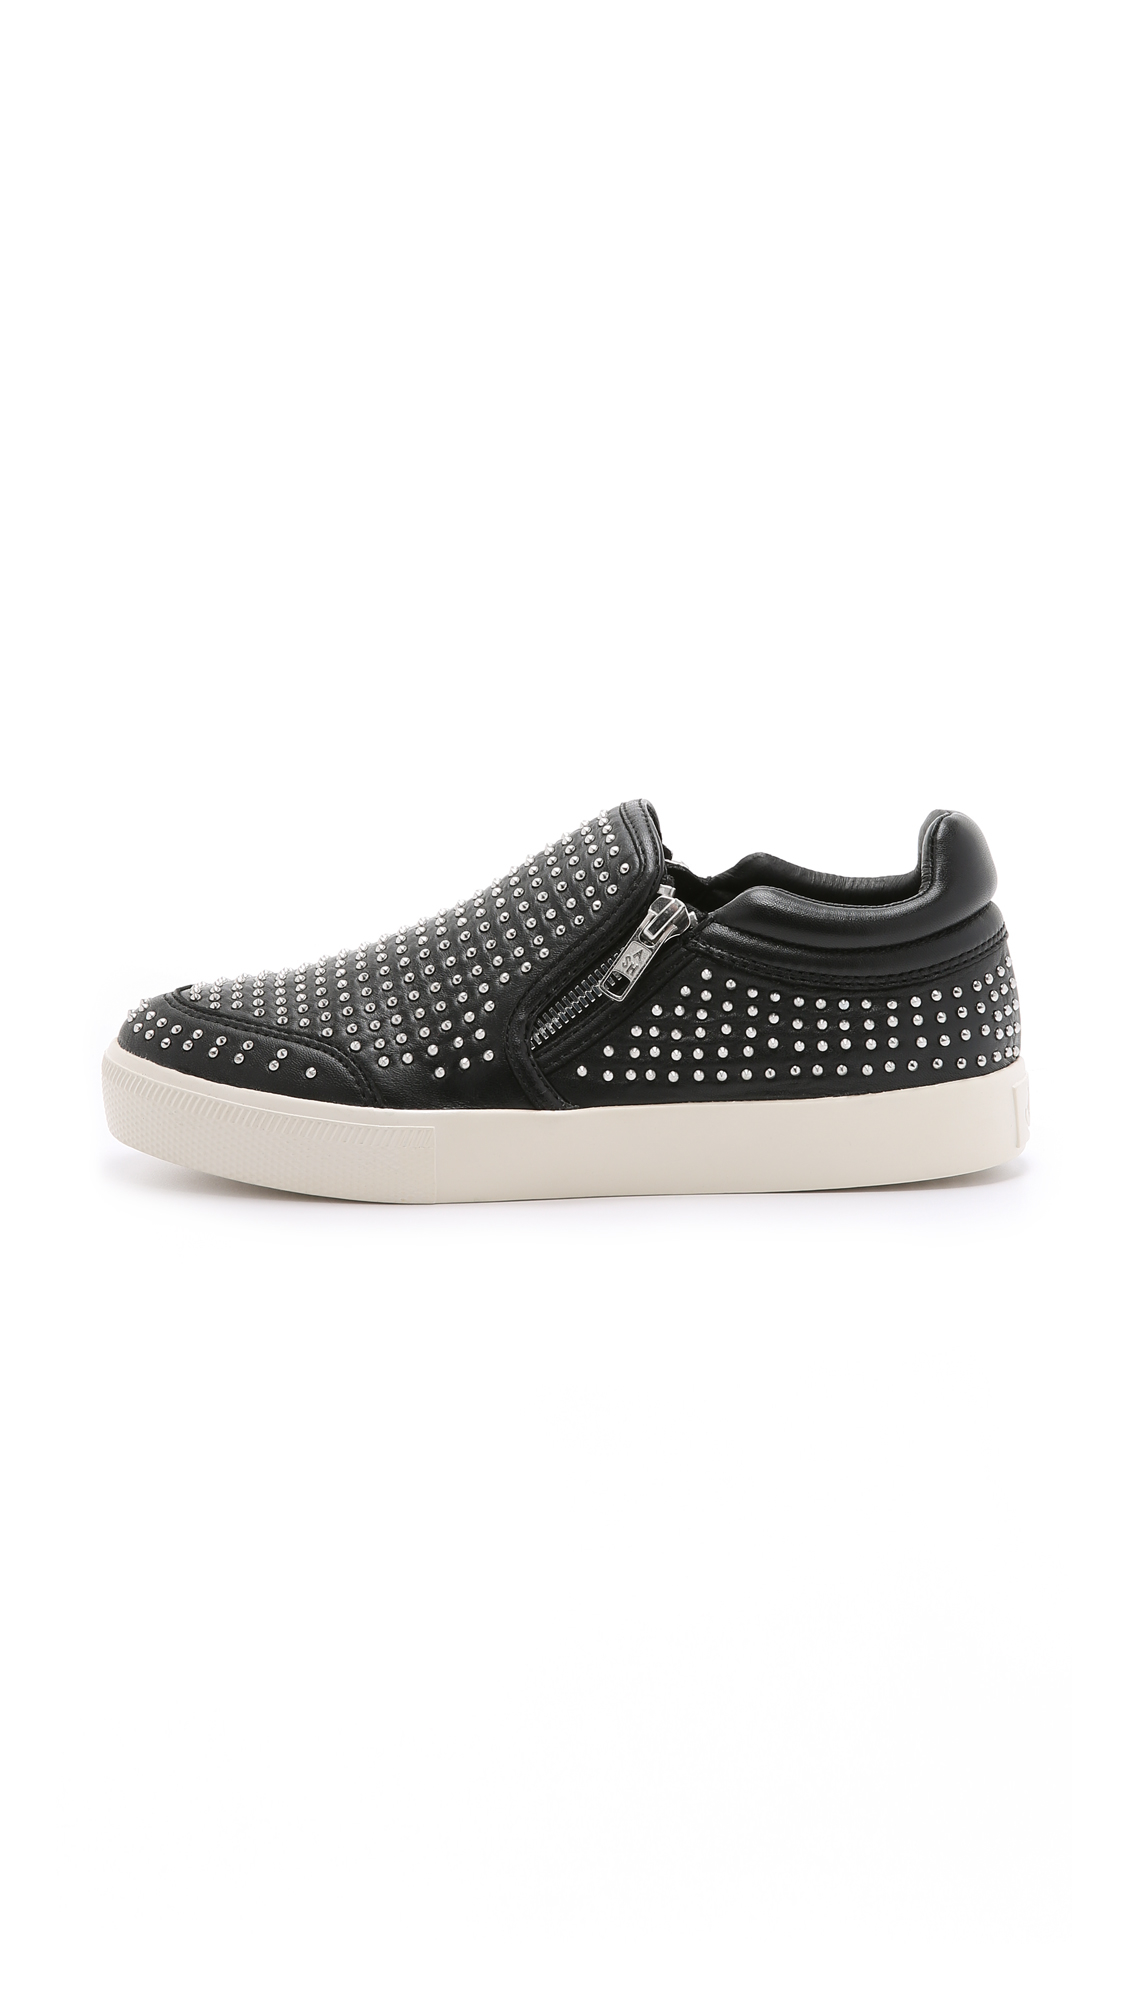 ash iman slip on sneakers black in black lyst